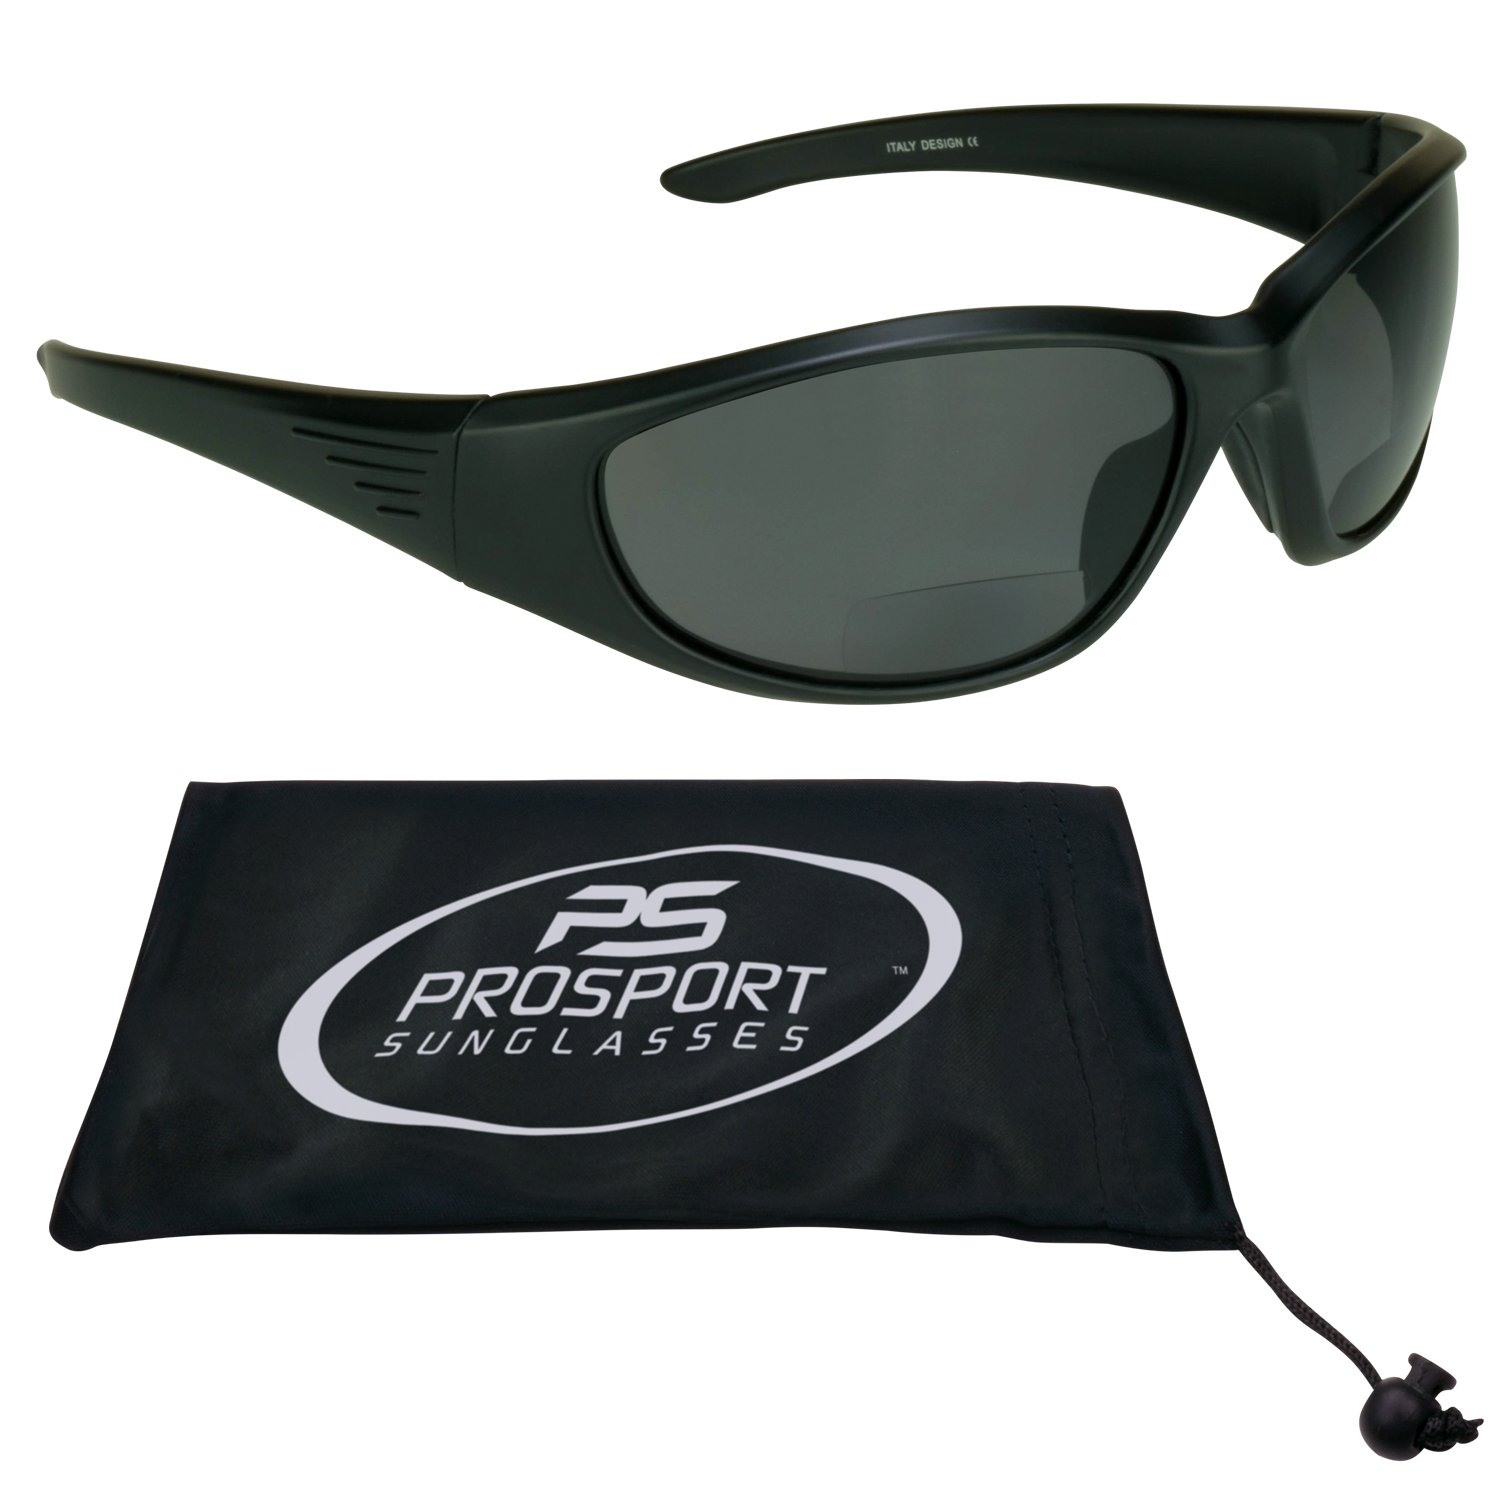 Motorcycle Bifocal Polarized Sunglasses 3.00 with Smoke Polycarbonate Safety Lenses - Free Microfiber Cleaning Case. Overdrive/SMK/3.0